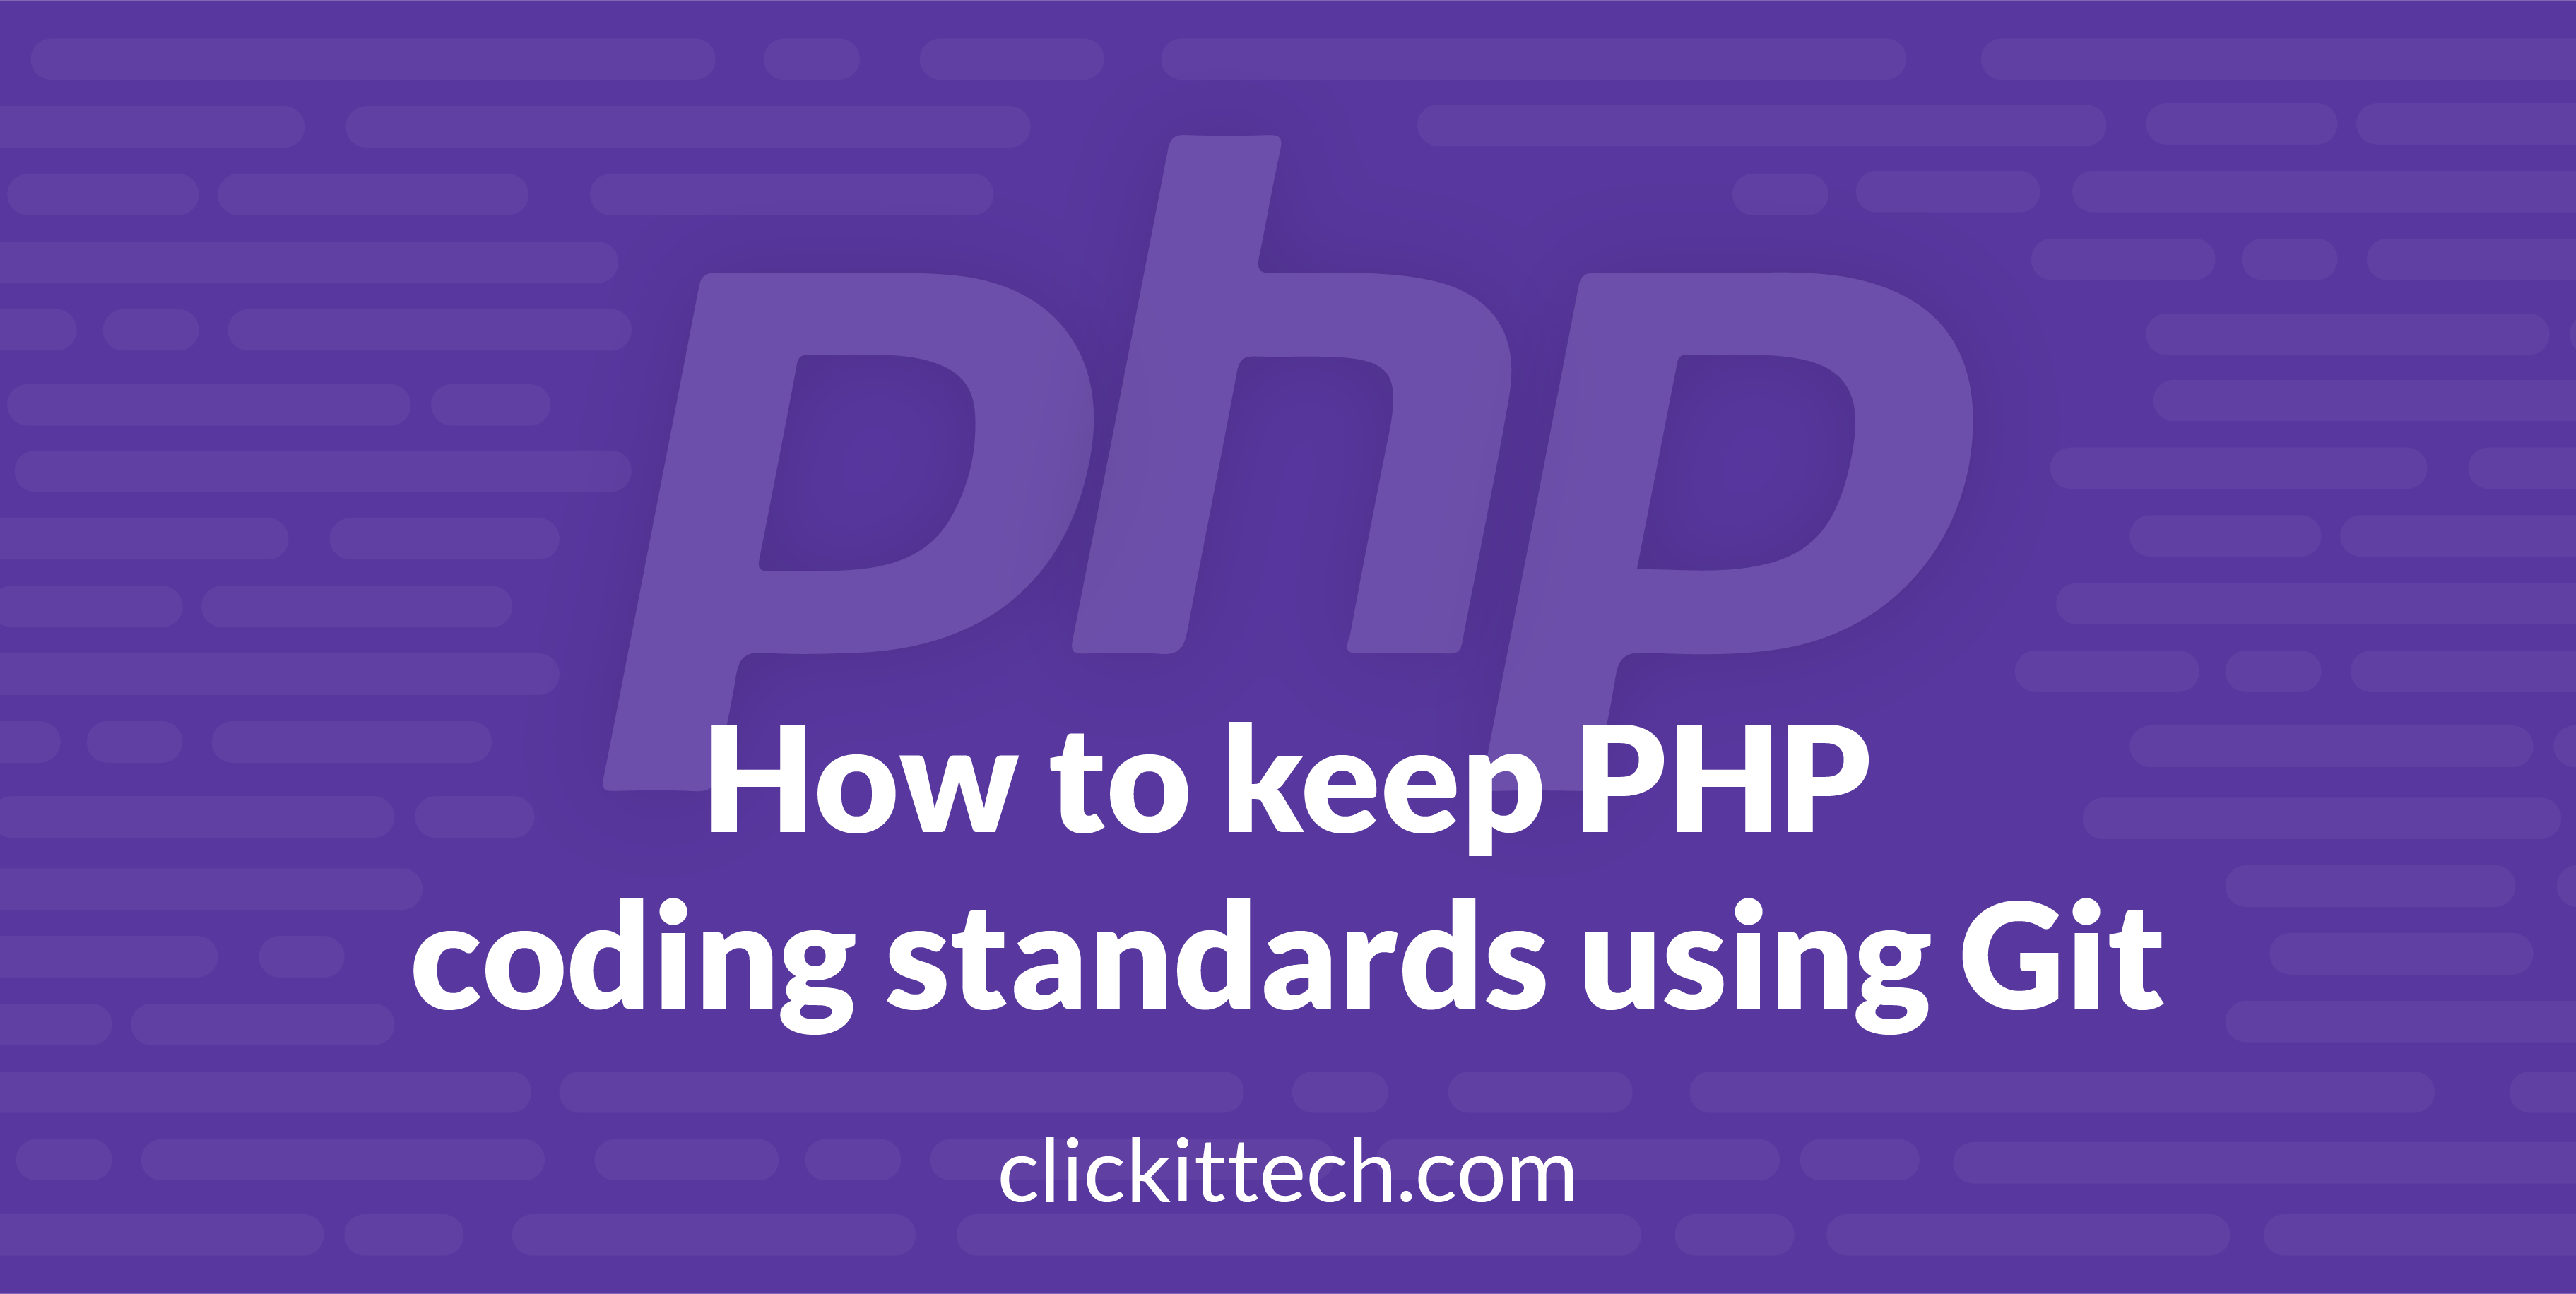 How to keep PHP coding standards using Git